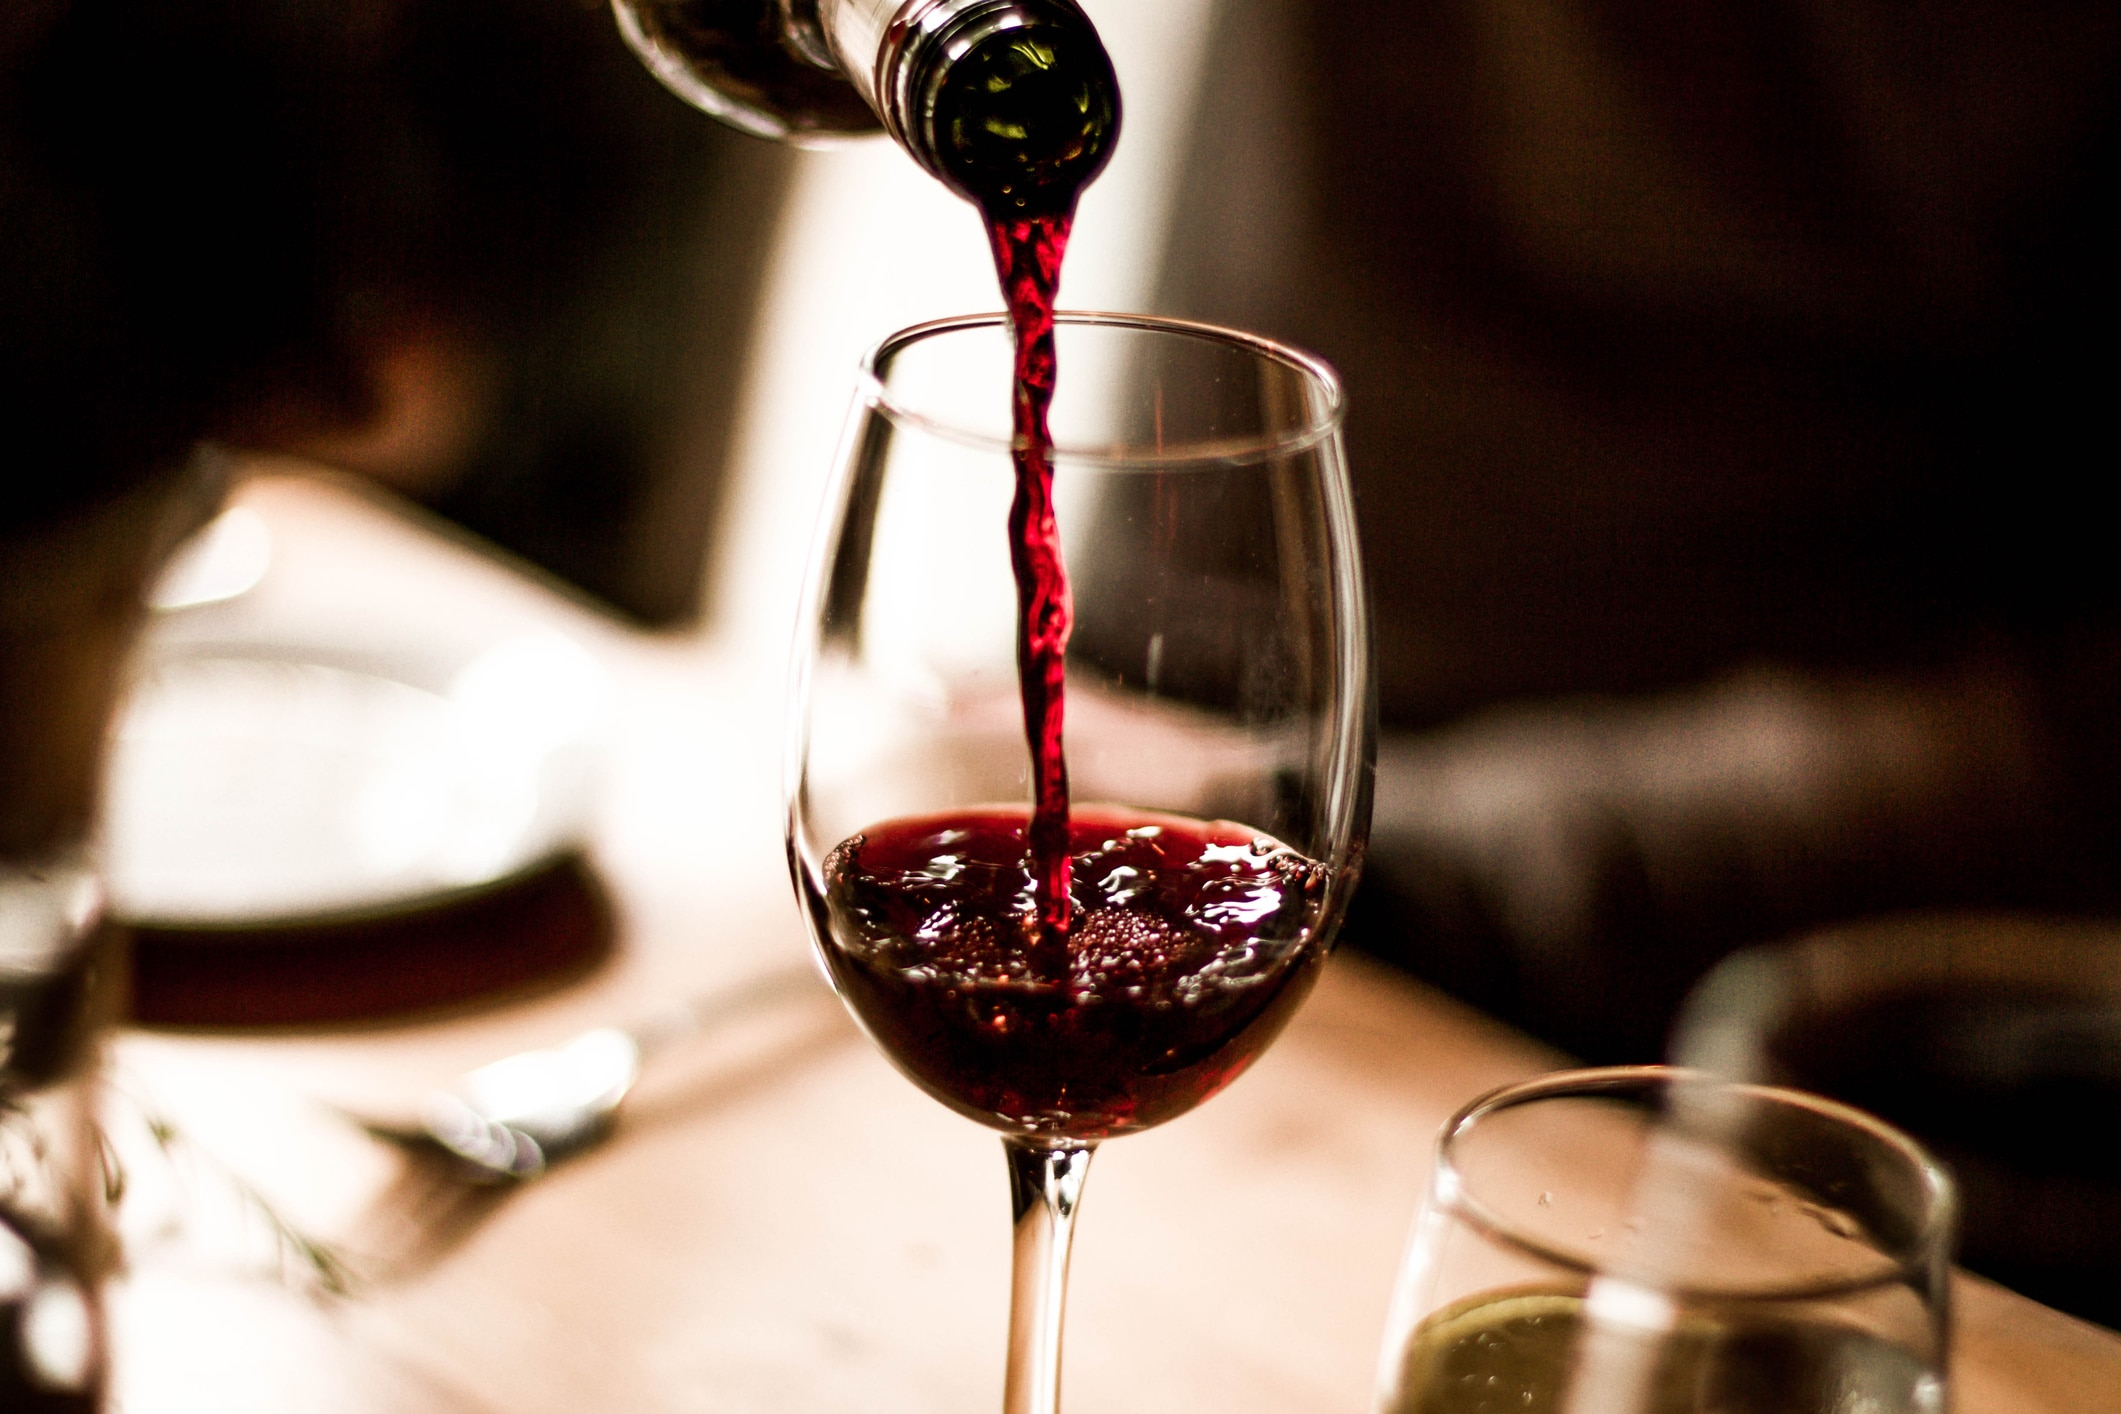 sommelier-pours-red-wine-at-restaurant